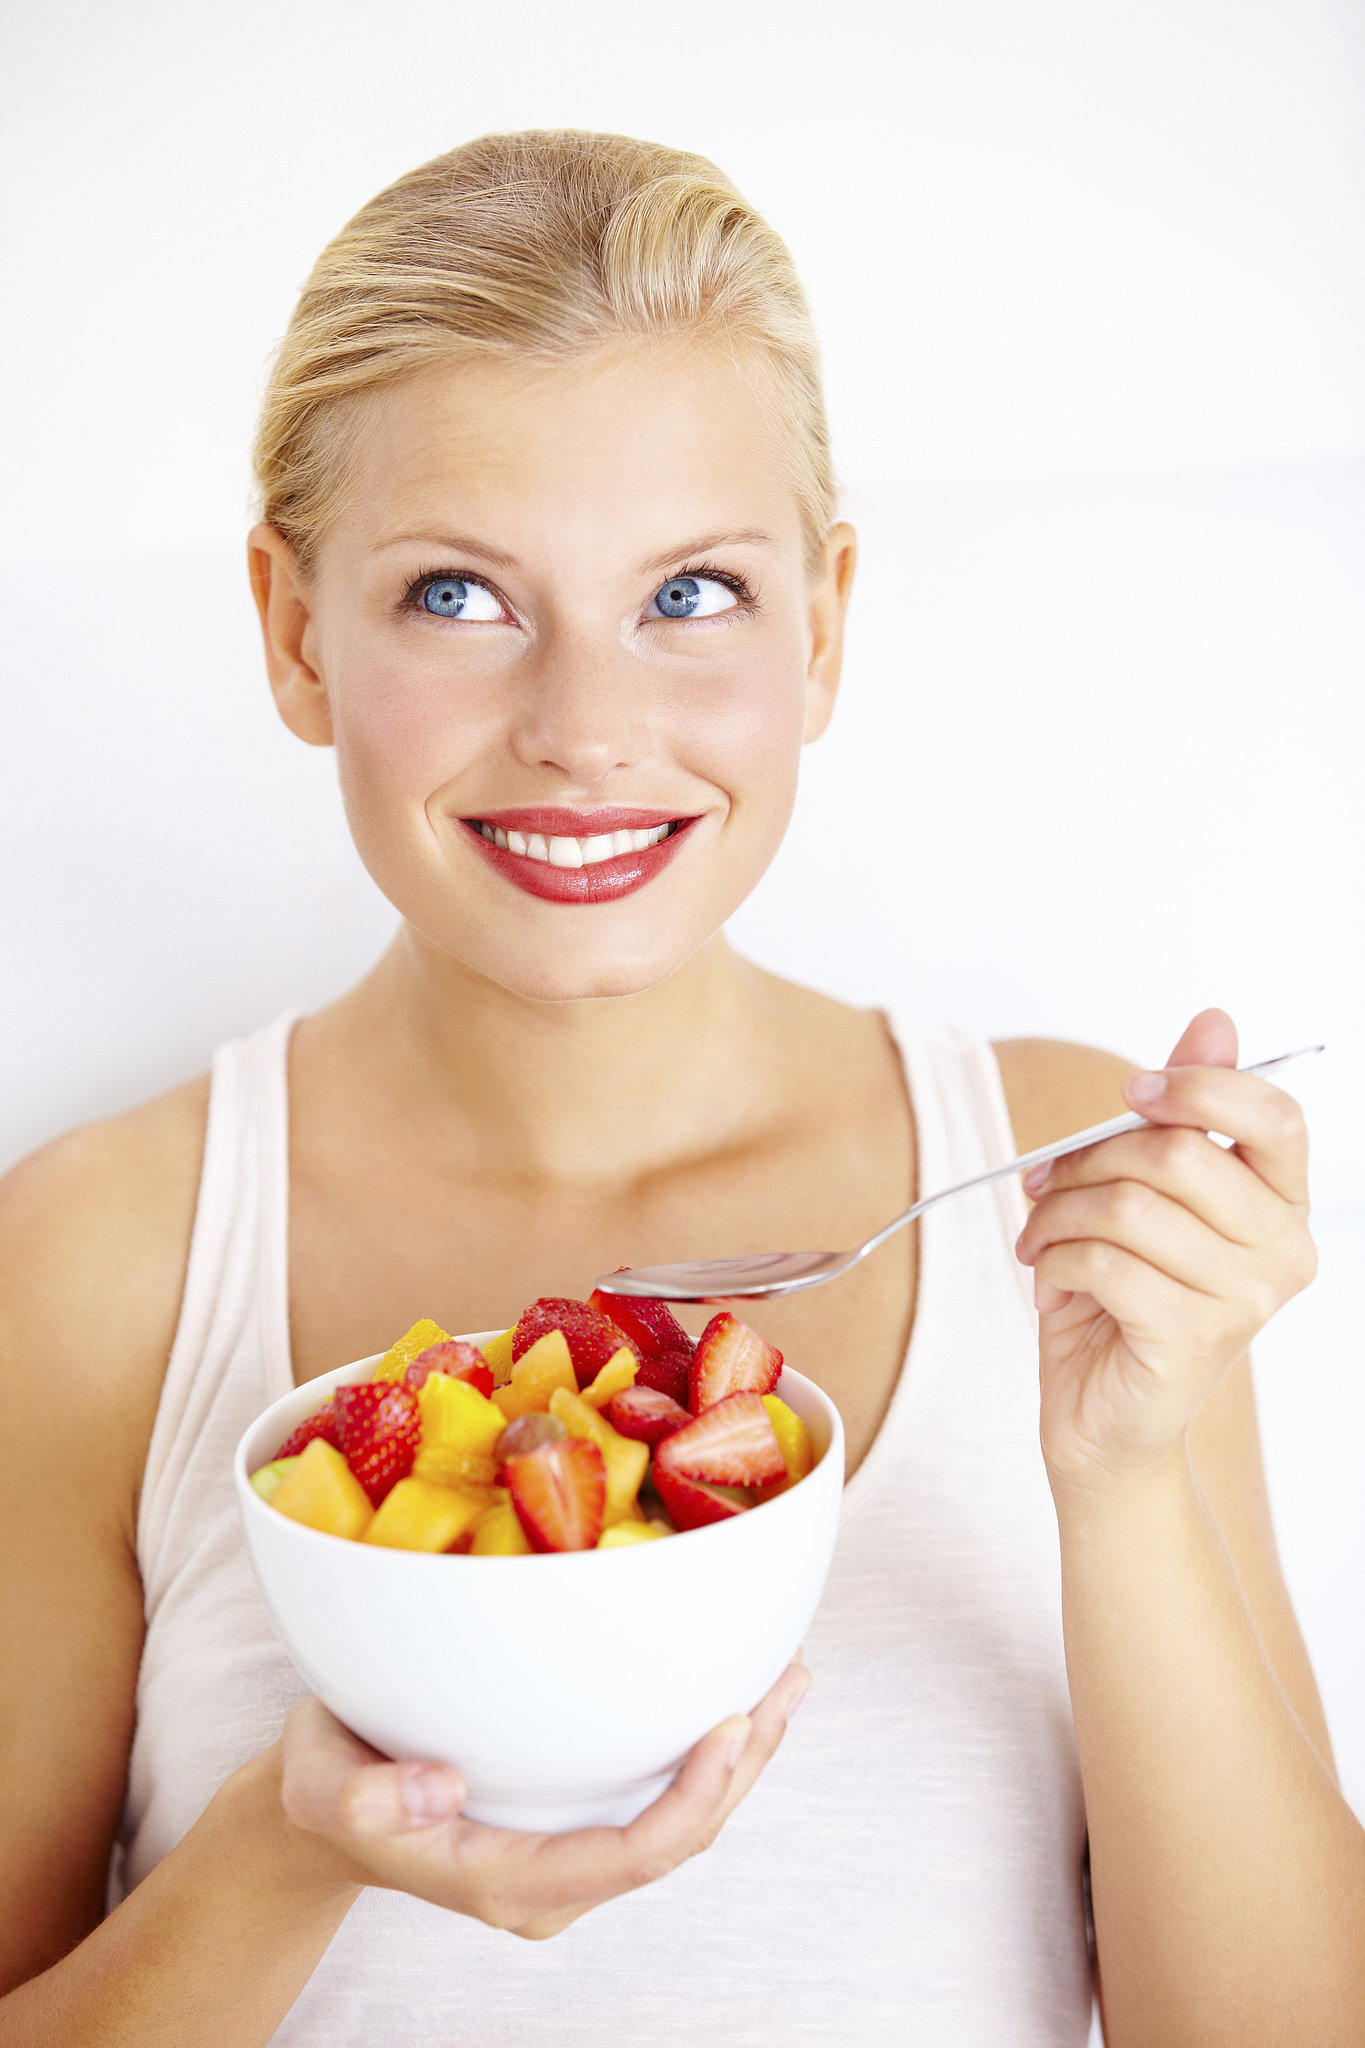 Breakfast Ideas For Fast Weight Loss